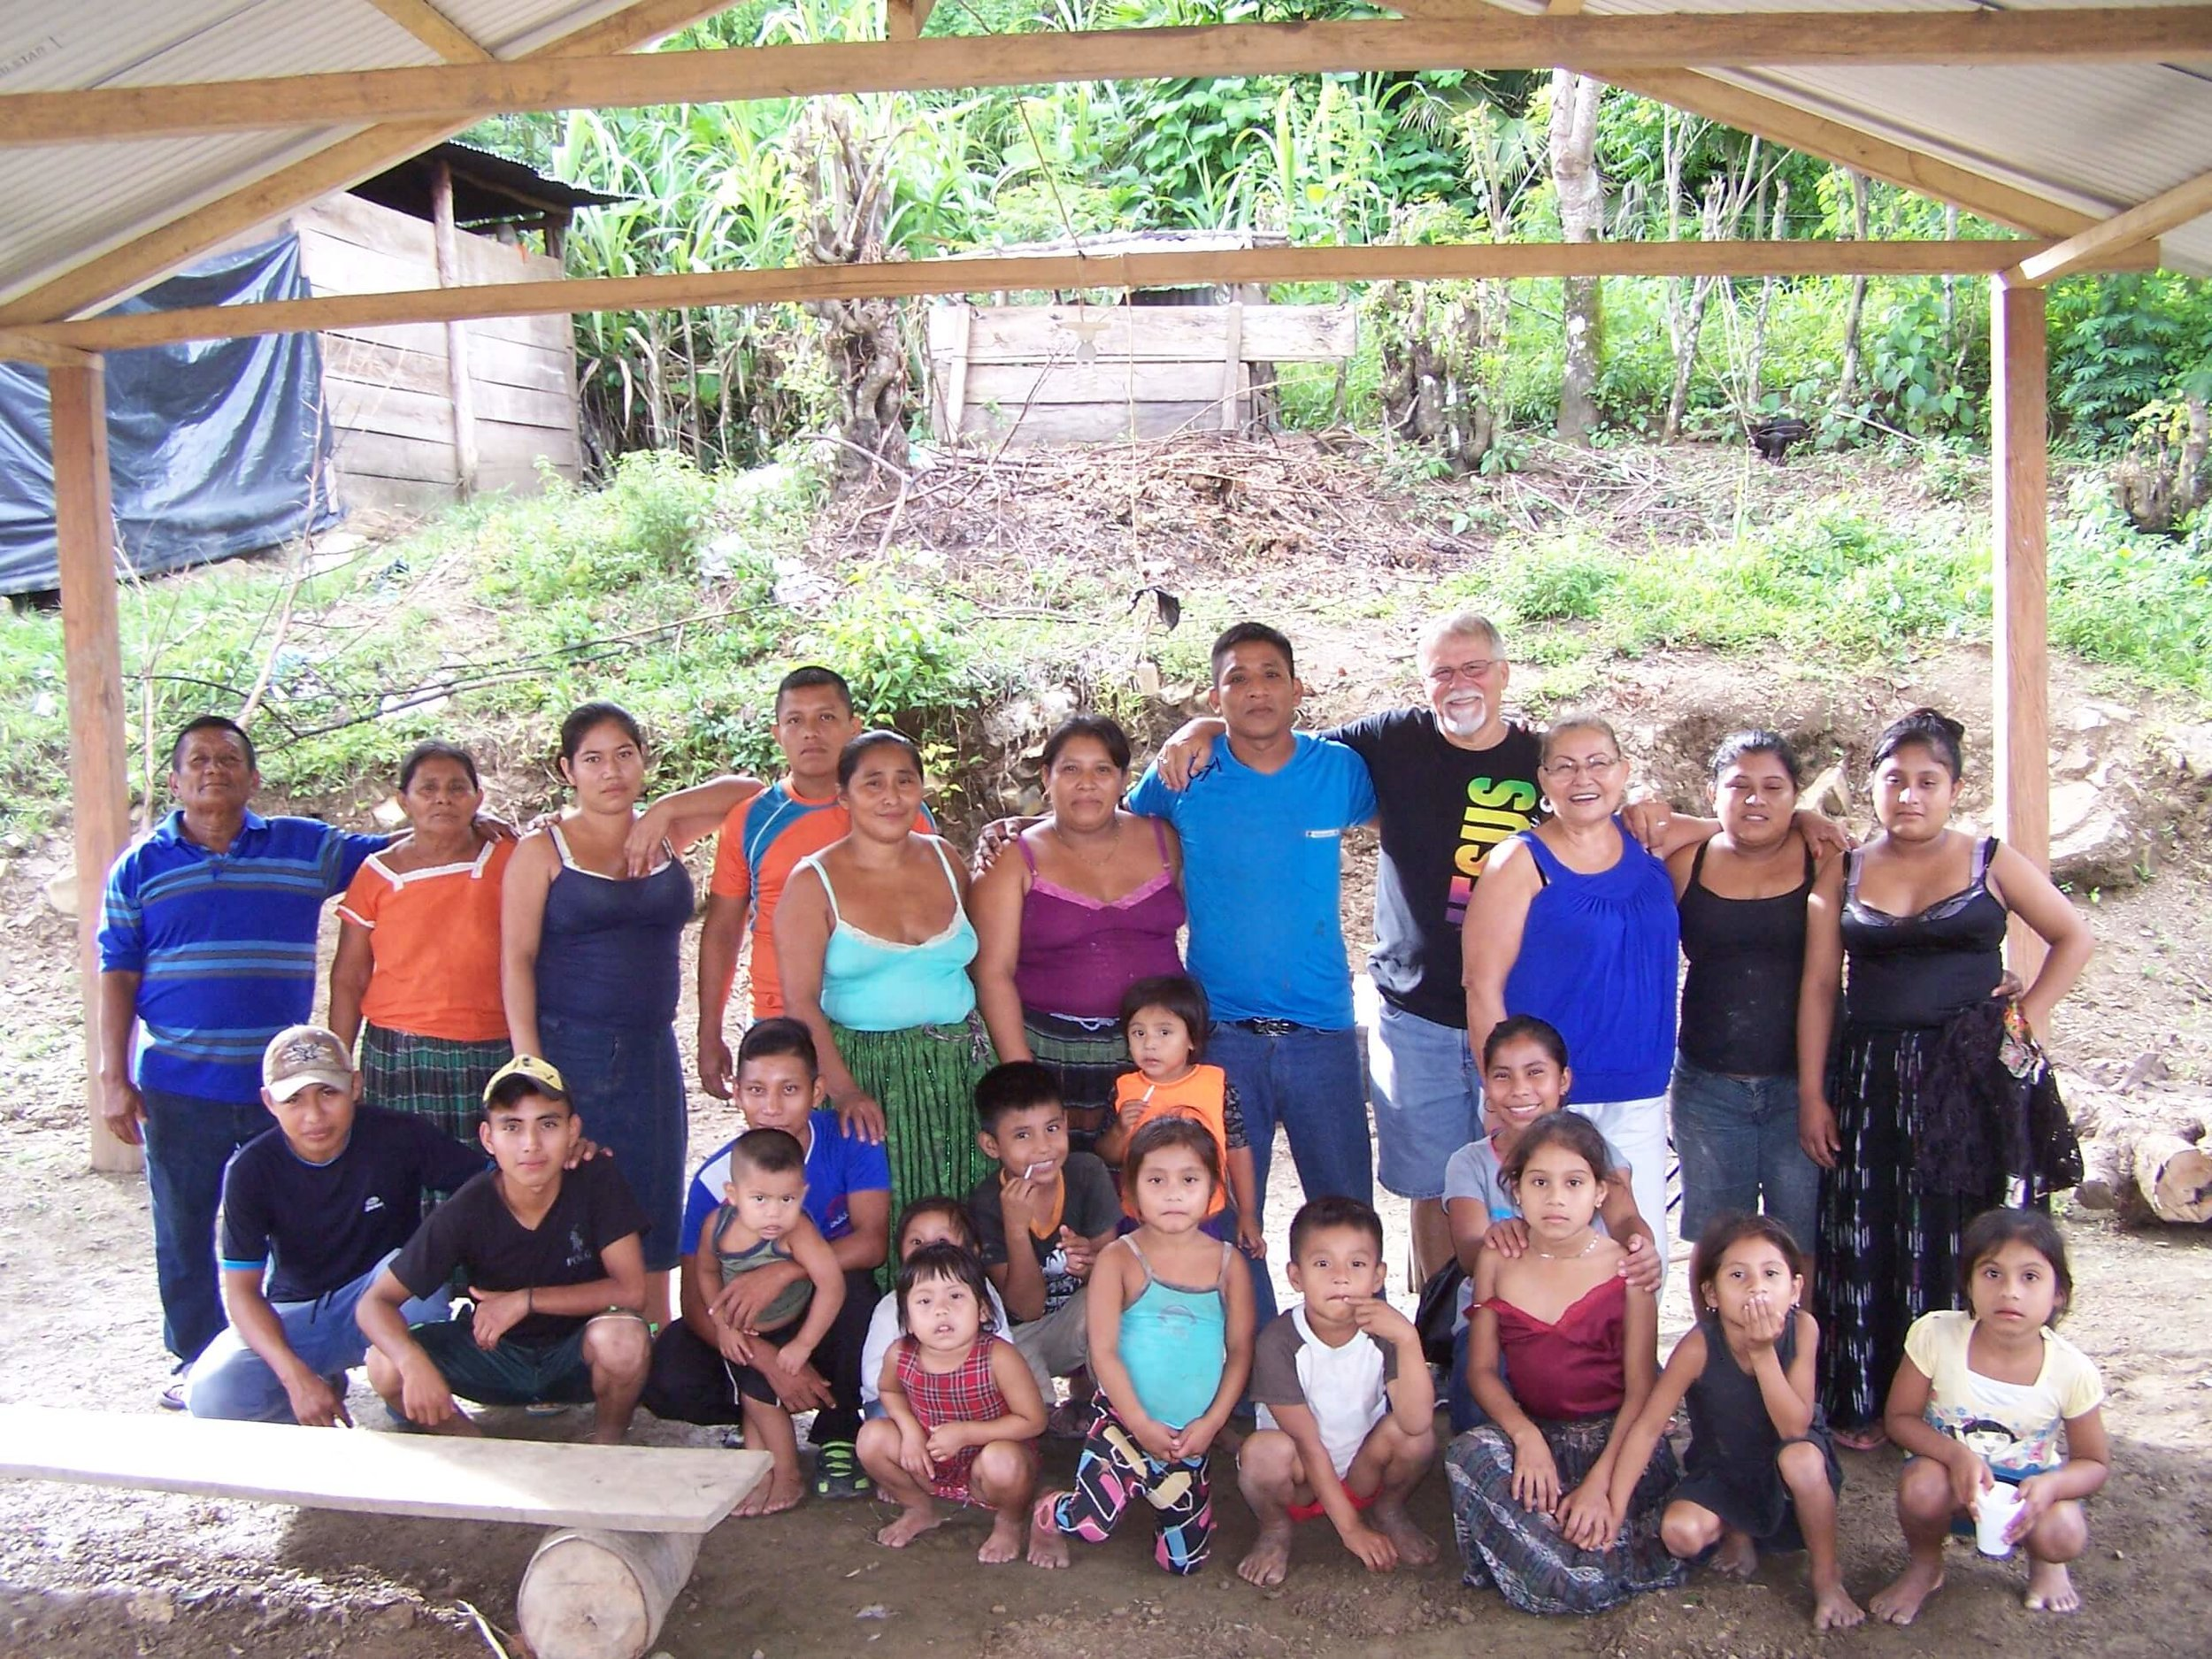 Ray Gurney poses with the nucleus of a new church in Sejux, Chahal, Guatemala, standing under their church's new roof.